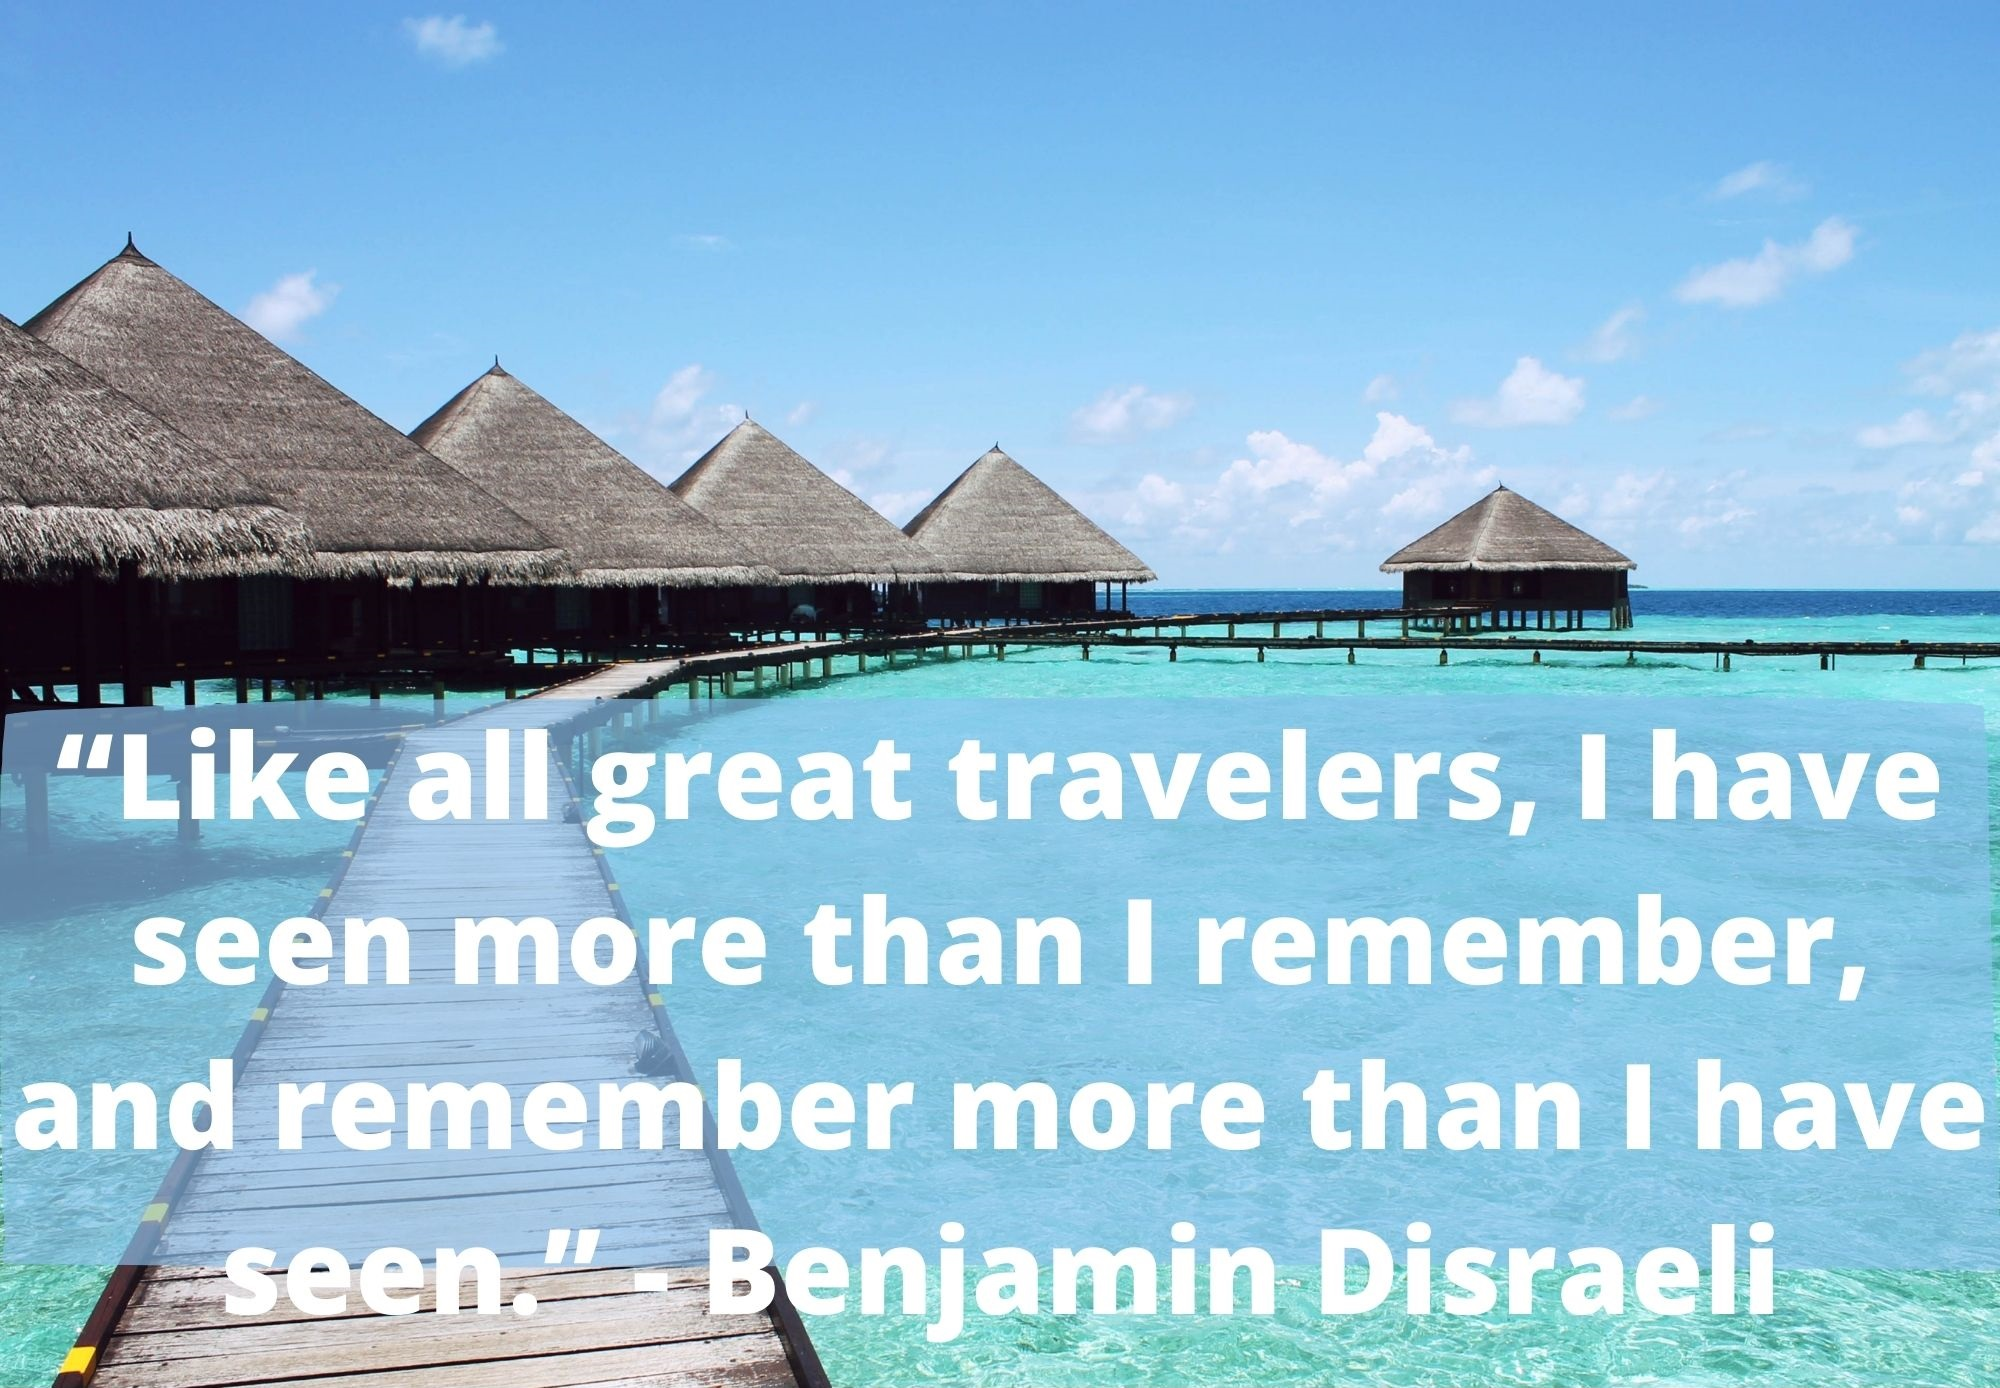 """""""Like all great travelers, I have seen more than I remember, and remember more than I have seen."""" -Benjamin Disraeli"""